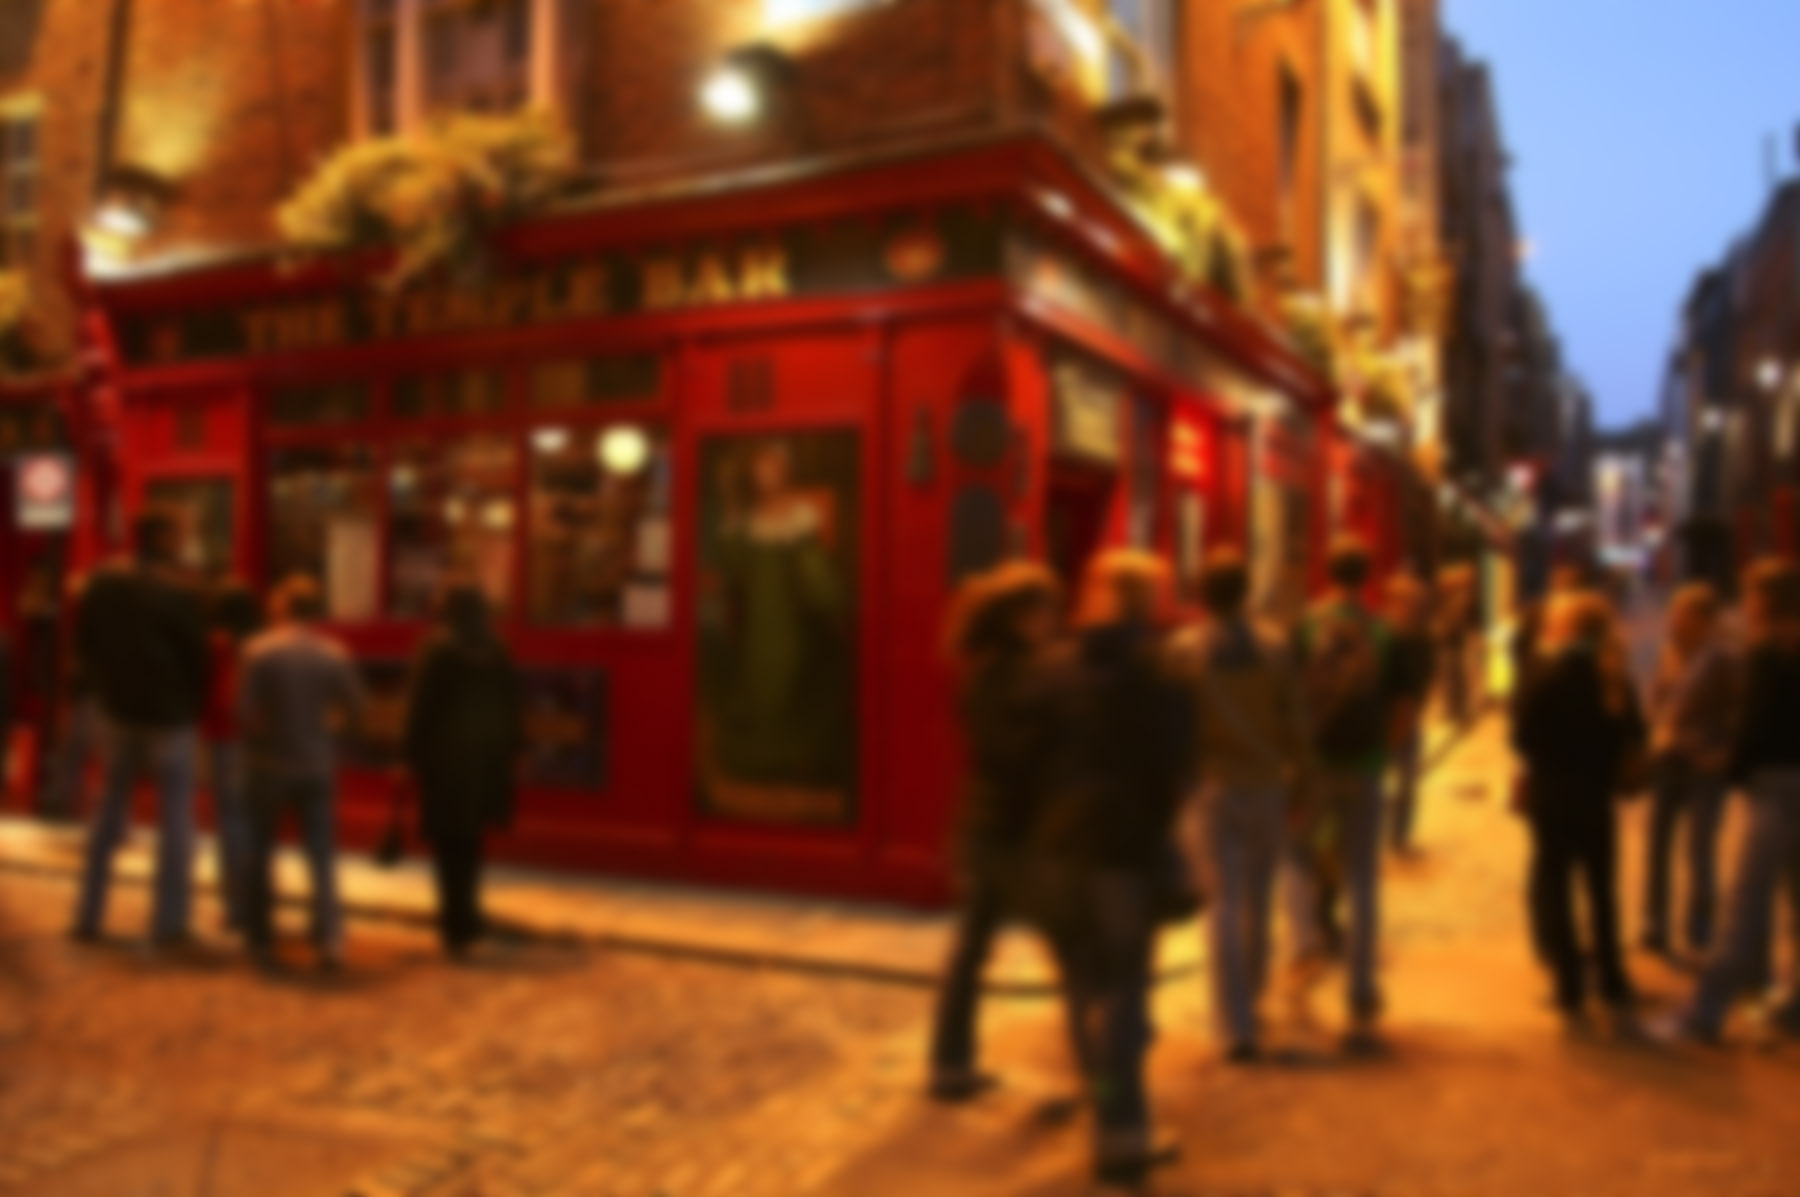 The Temple Bar in Dublin, Ireland (c)Bojan Radin